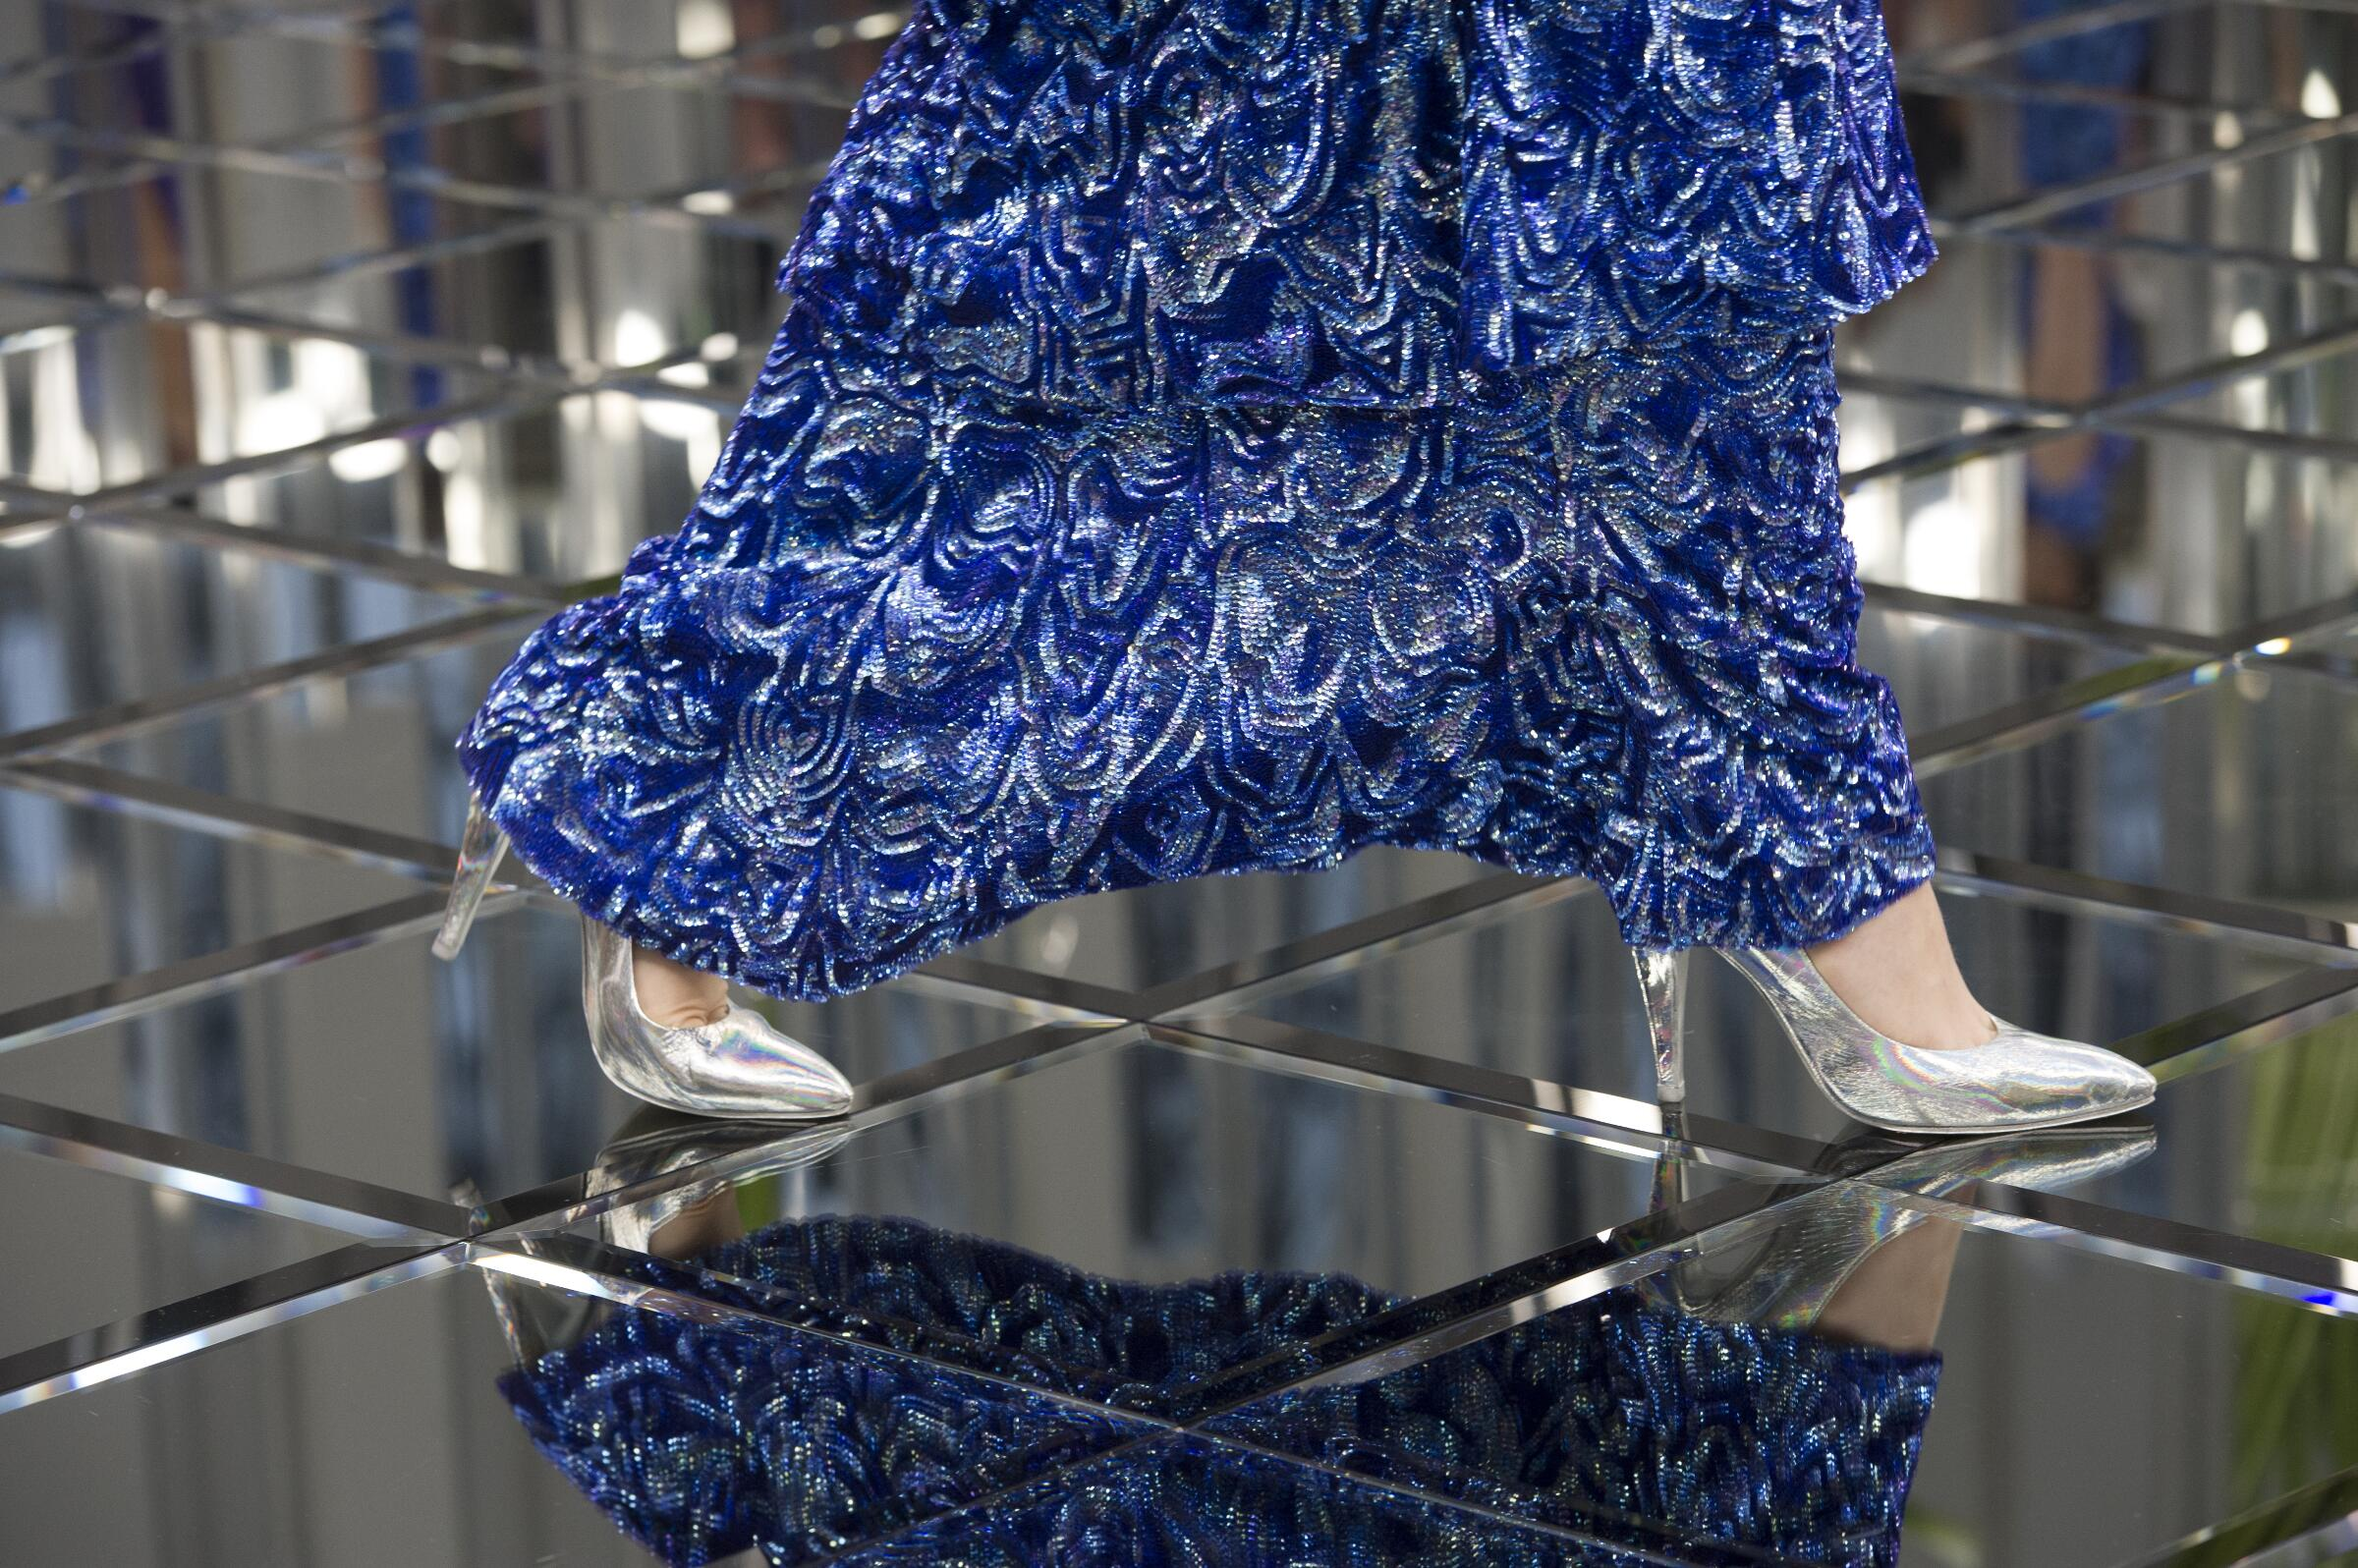 Chanel Haute Couture Woman Fashion Shoes